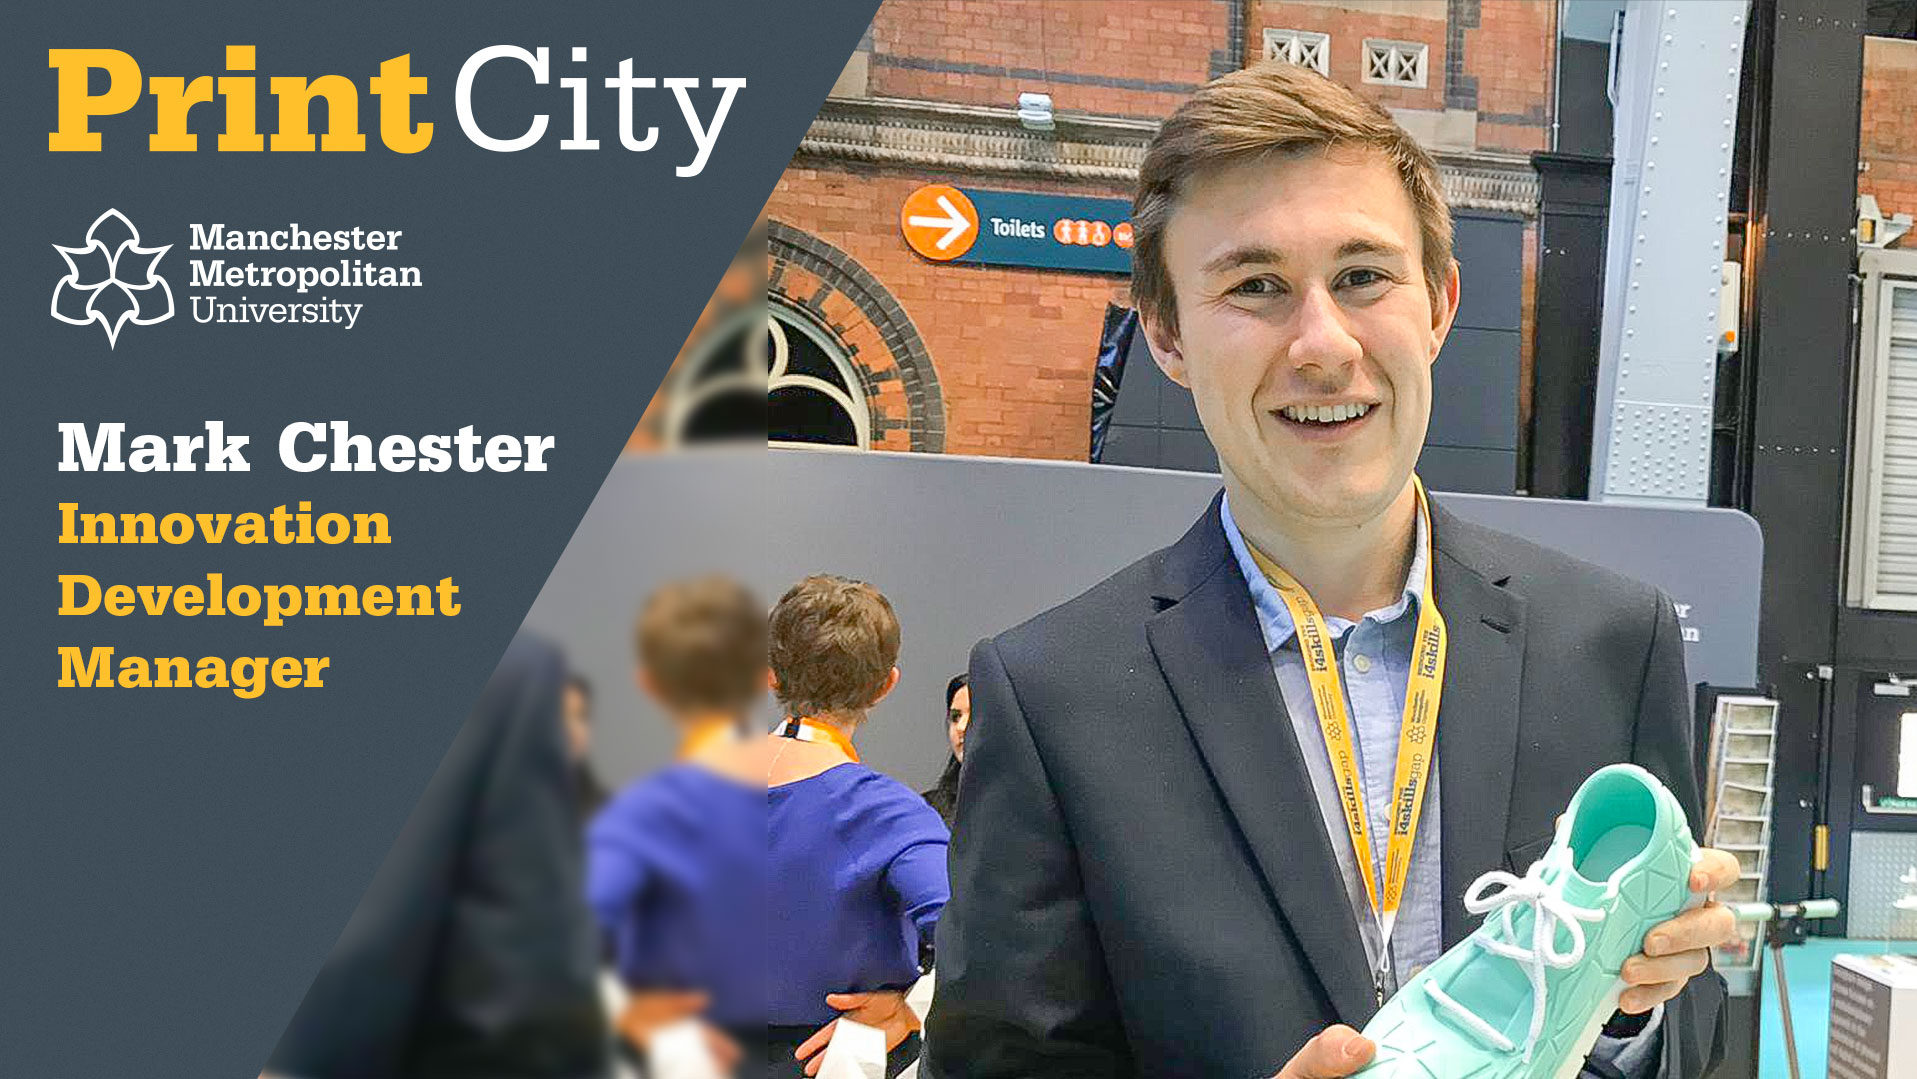 Mark Chester - Staff Profile - PrintCity - Manchester Metropolitan University